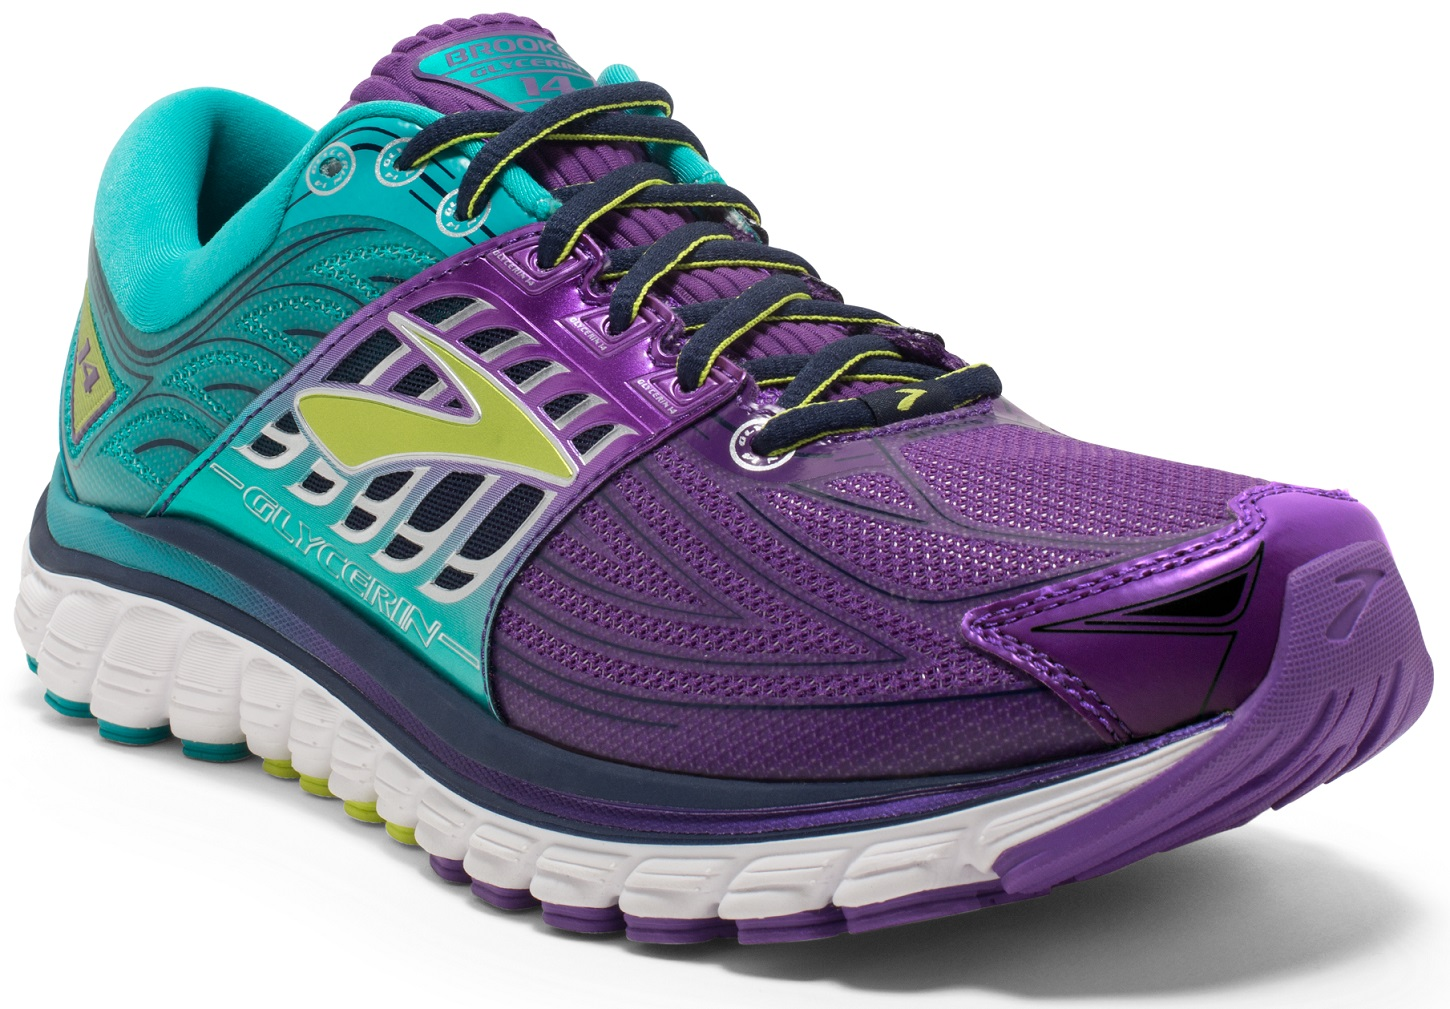 Womens Brooks Running Shoes On Sale